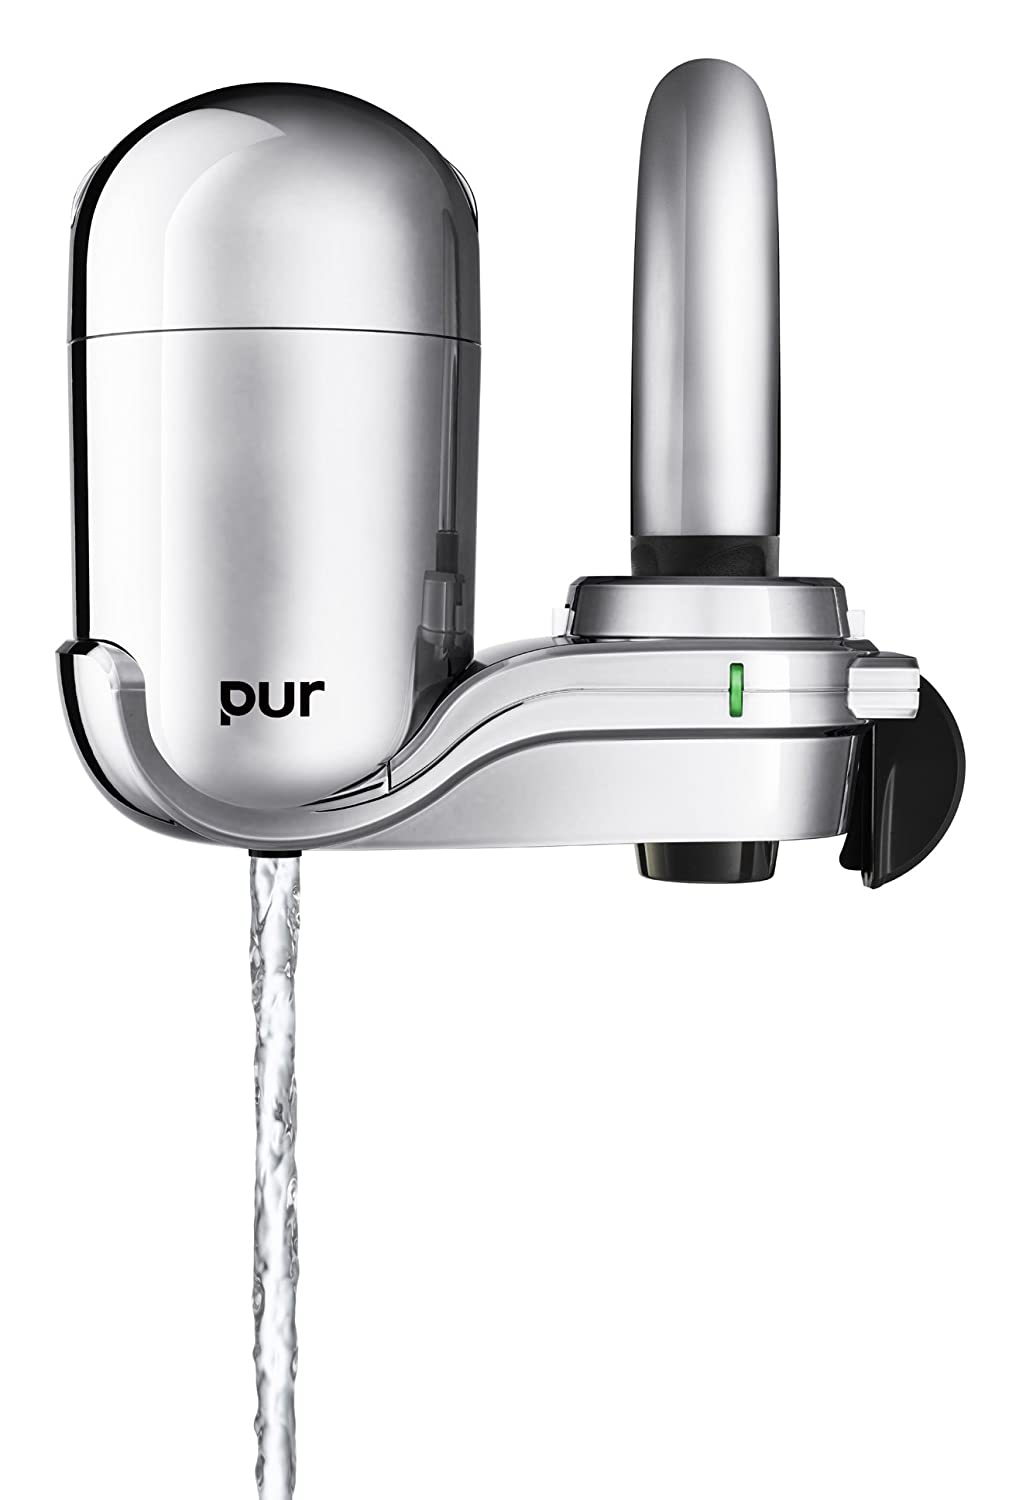 pur 3stage advanced faucet water filter